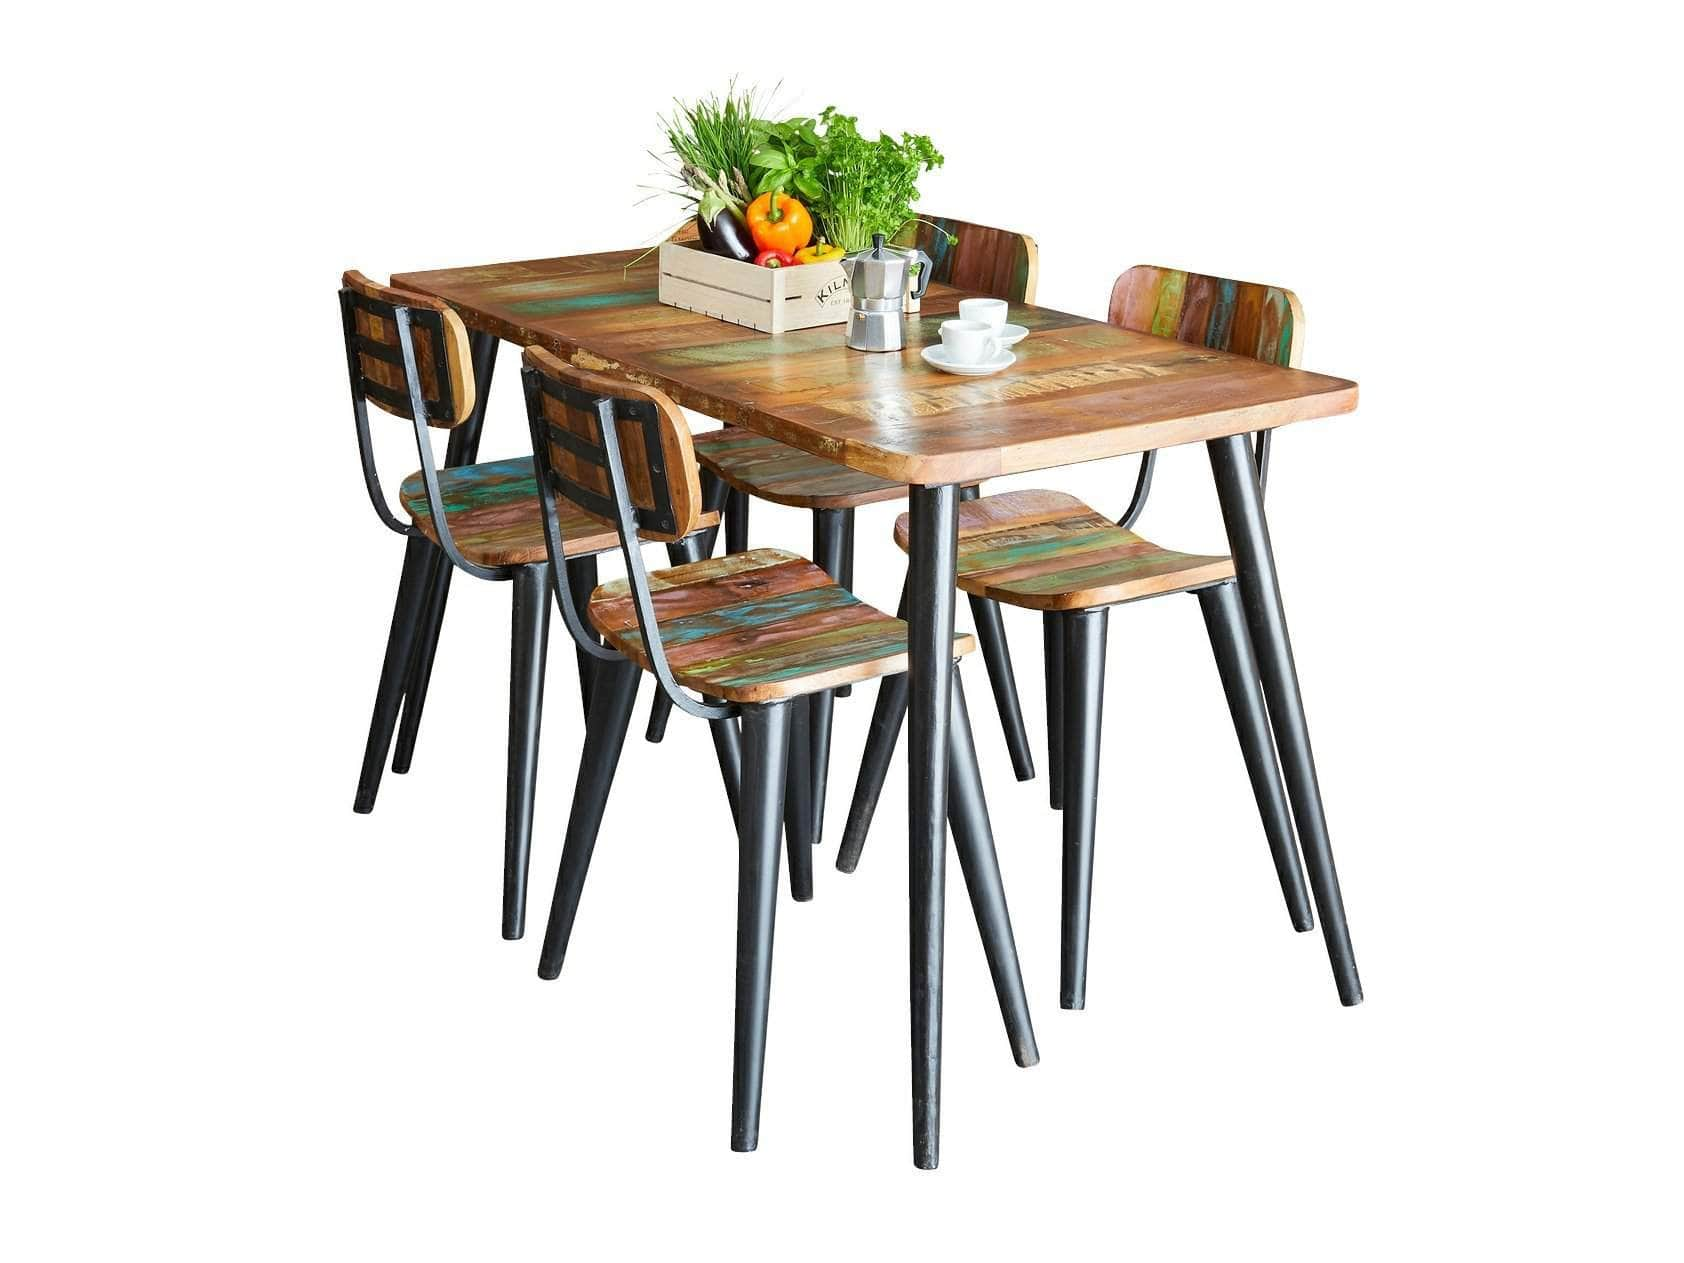 Large Chamba Indian Boat Wood Dining Table ...